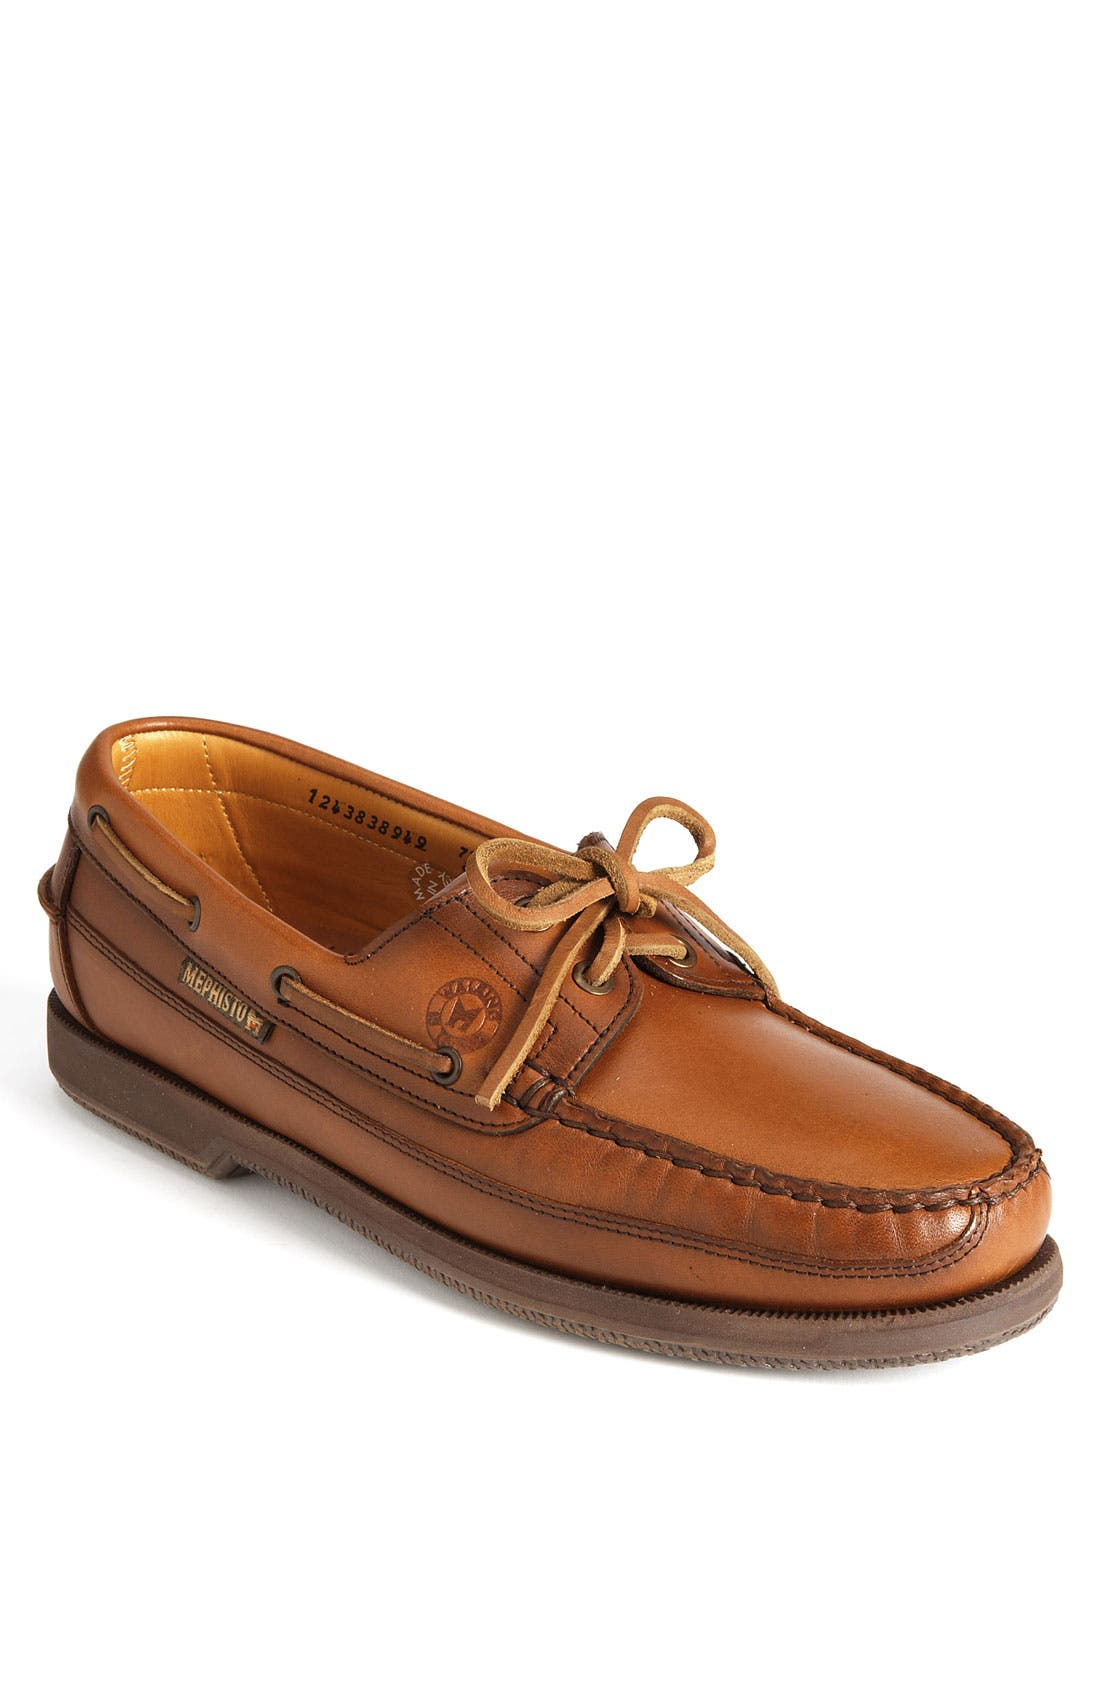 Alternate Image 1 Selected - Mephisto 'Hurrikan' Boat Shoe